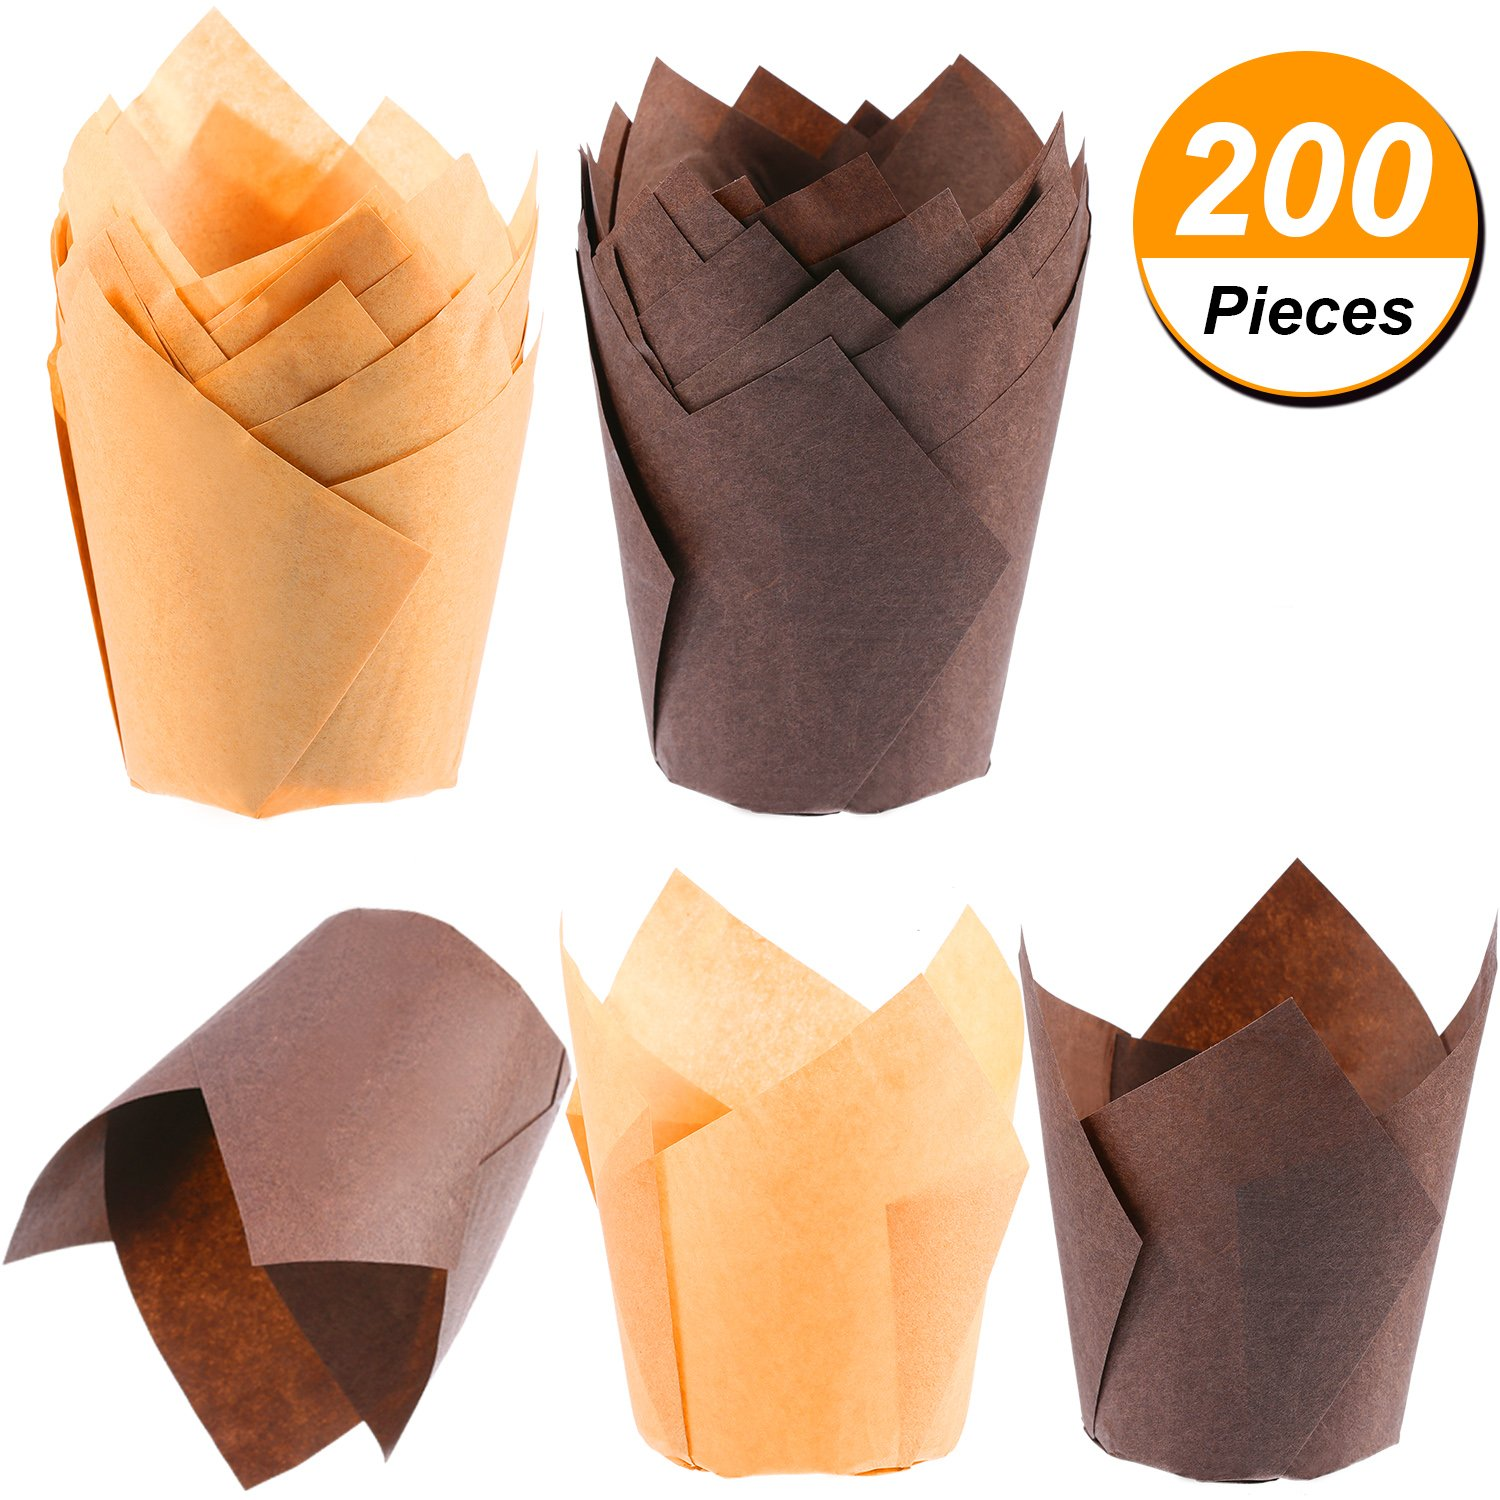 TecUnite 200 Pieces Tulip Cupcake Liner Baking Cups Paper Cupcake and Muffin Baking Cups for Weddings and Birthday, Brown and Nature Color by TecUnite